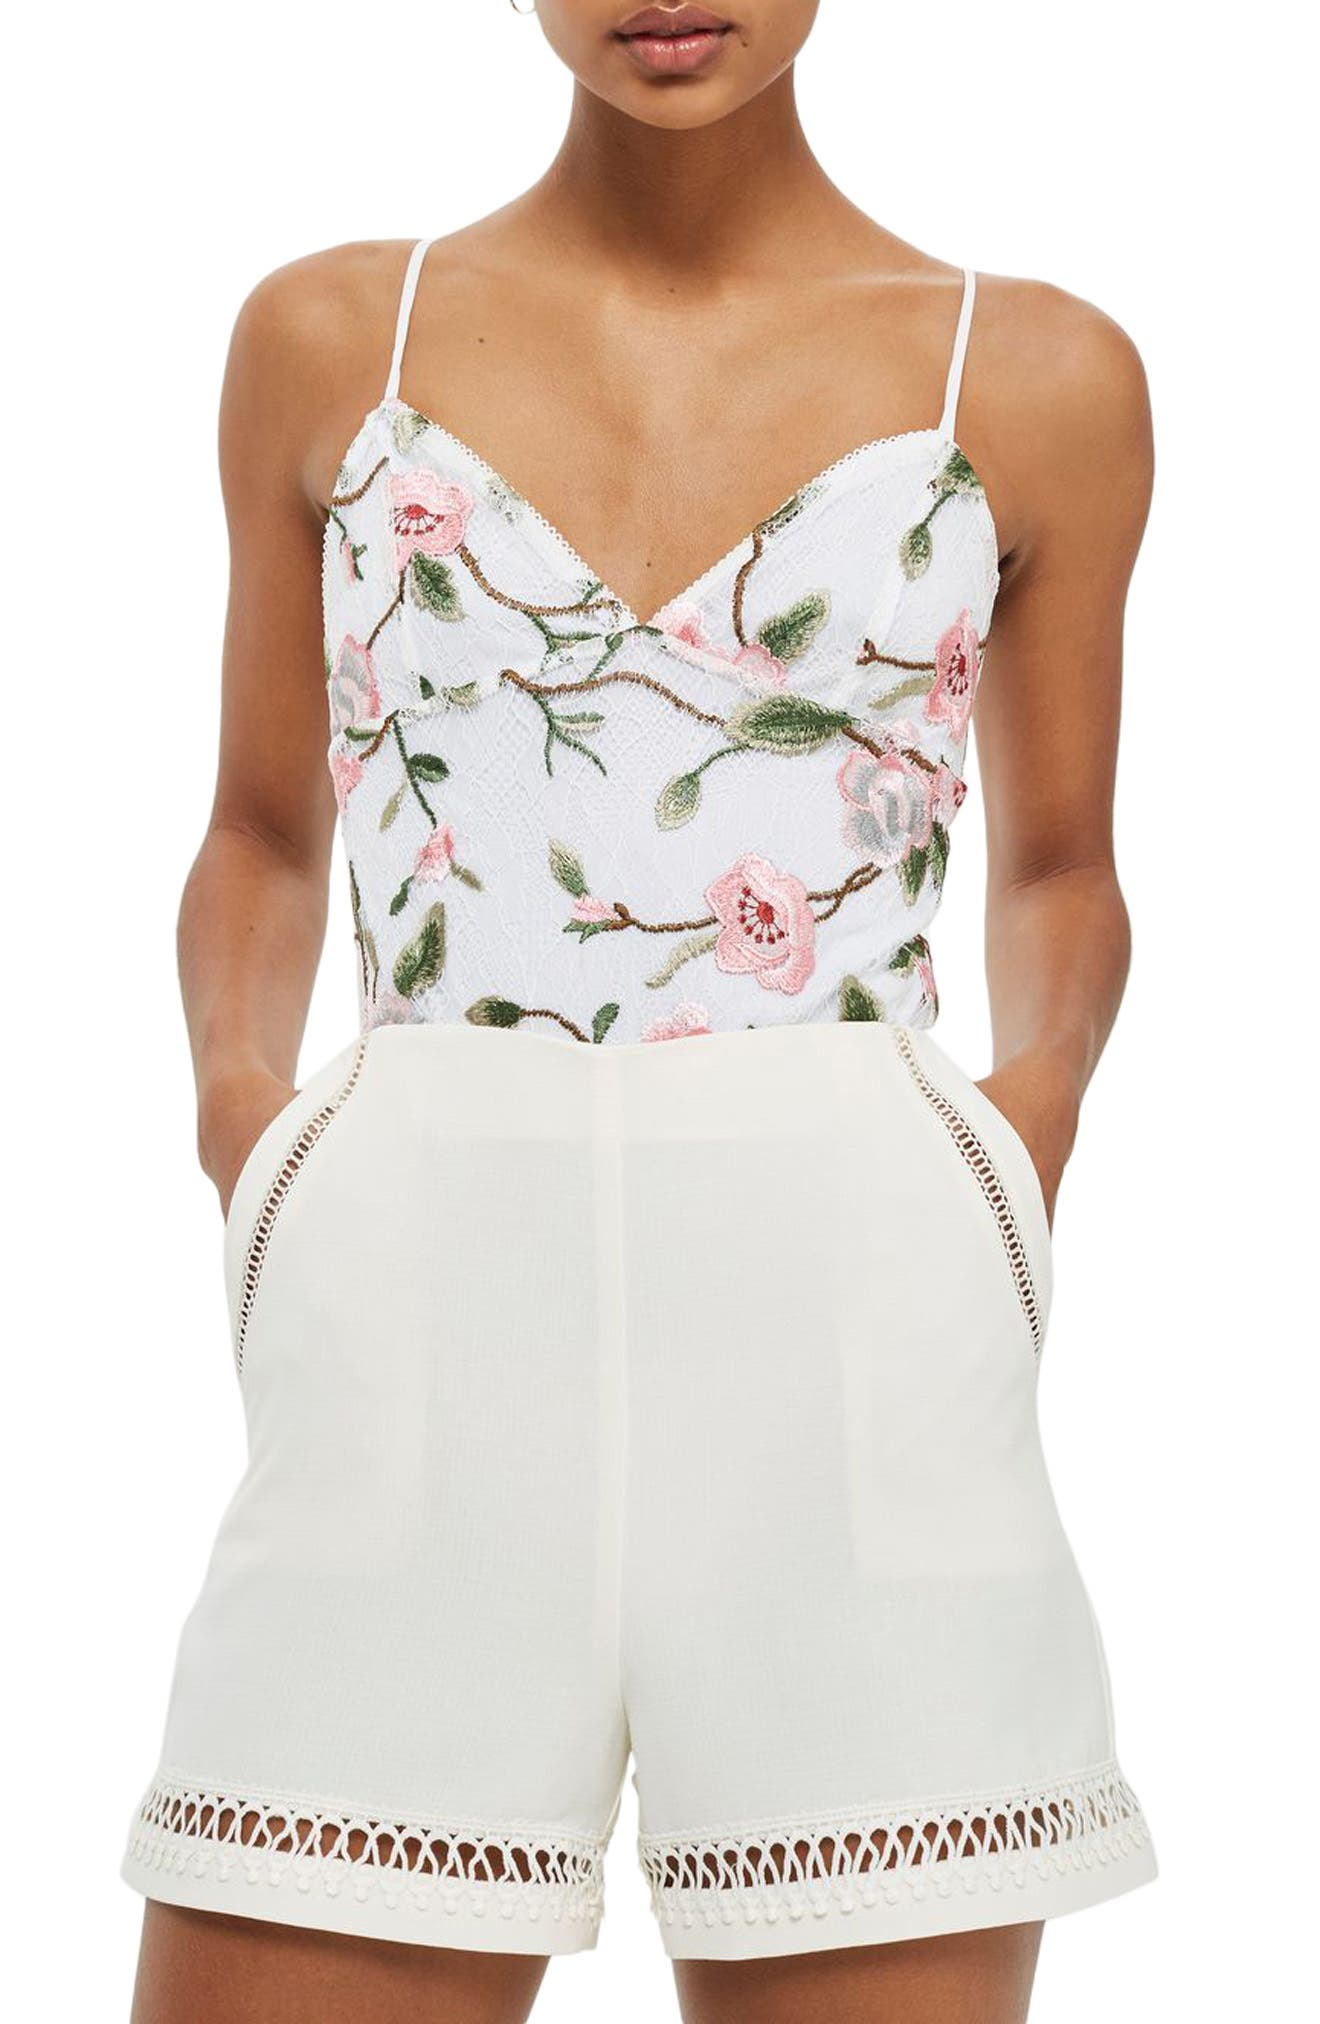 Topshop Embroidered Lace Bodysuit